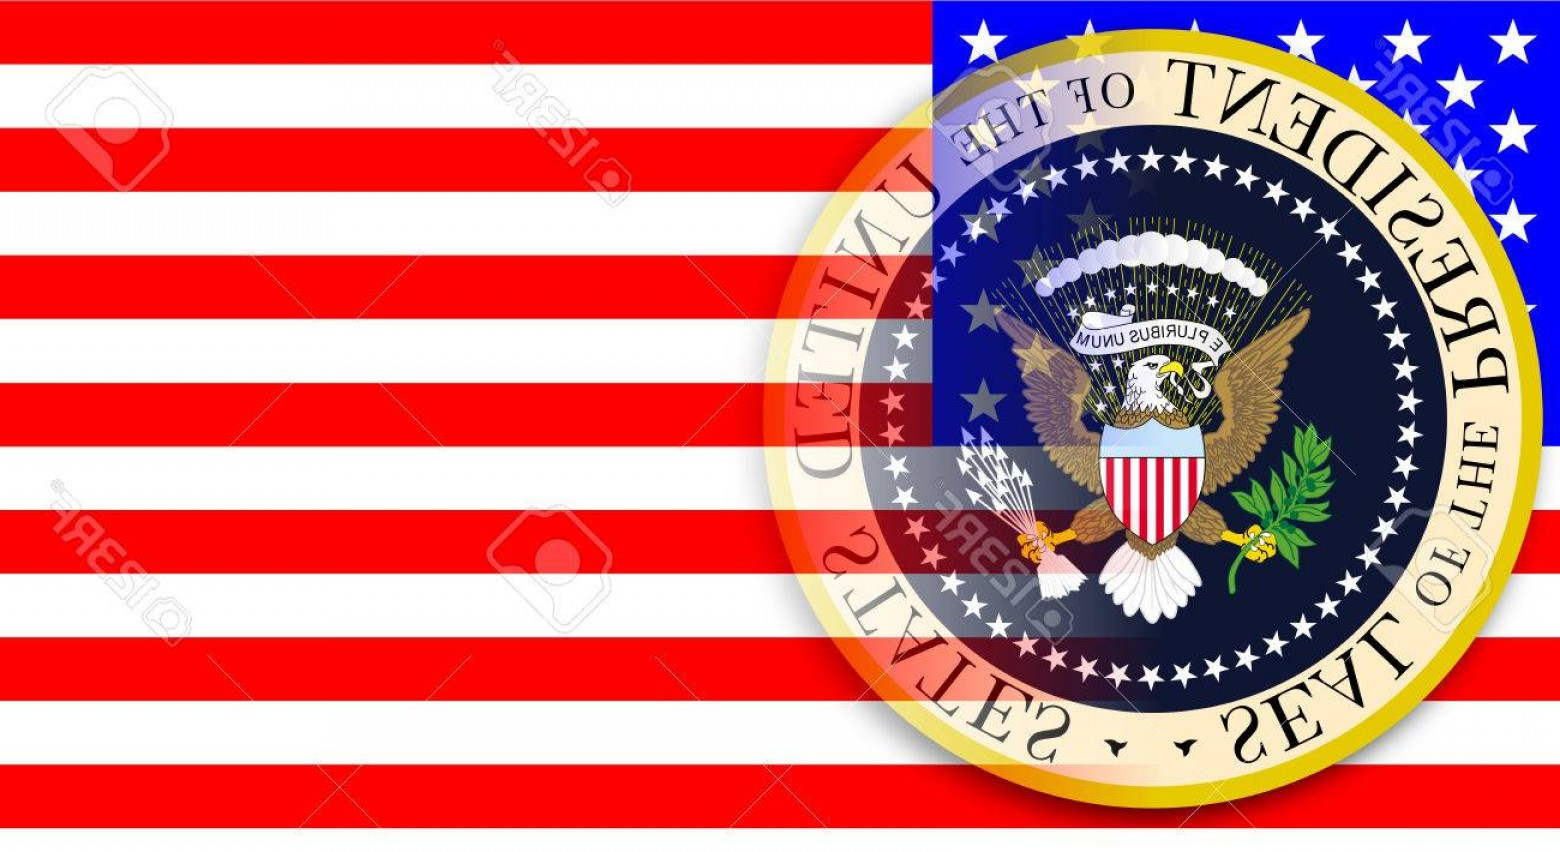 1560x852 Photostock Vector A Depiction Of The Seal Of The President Of The